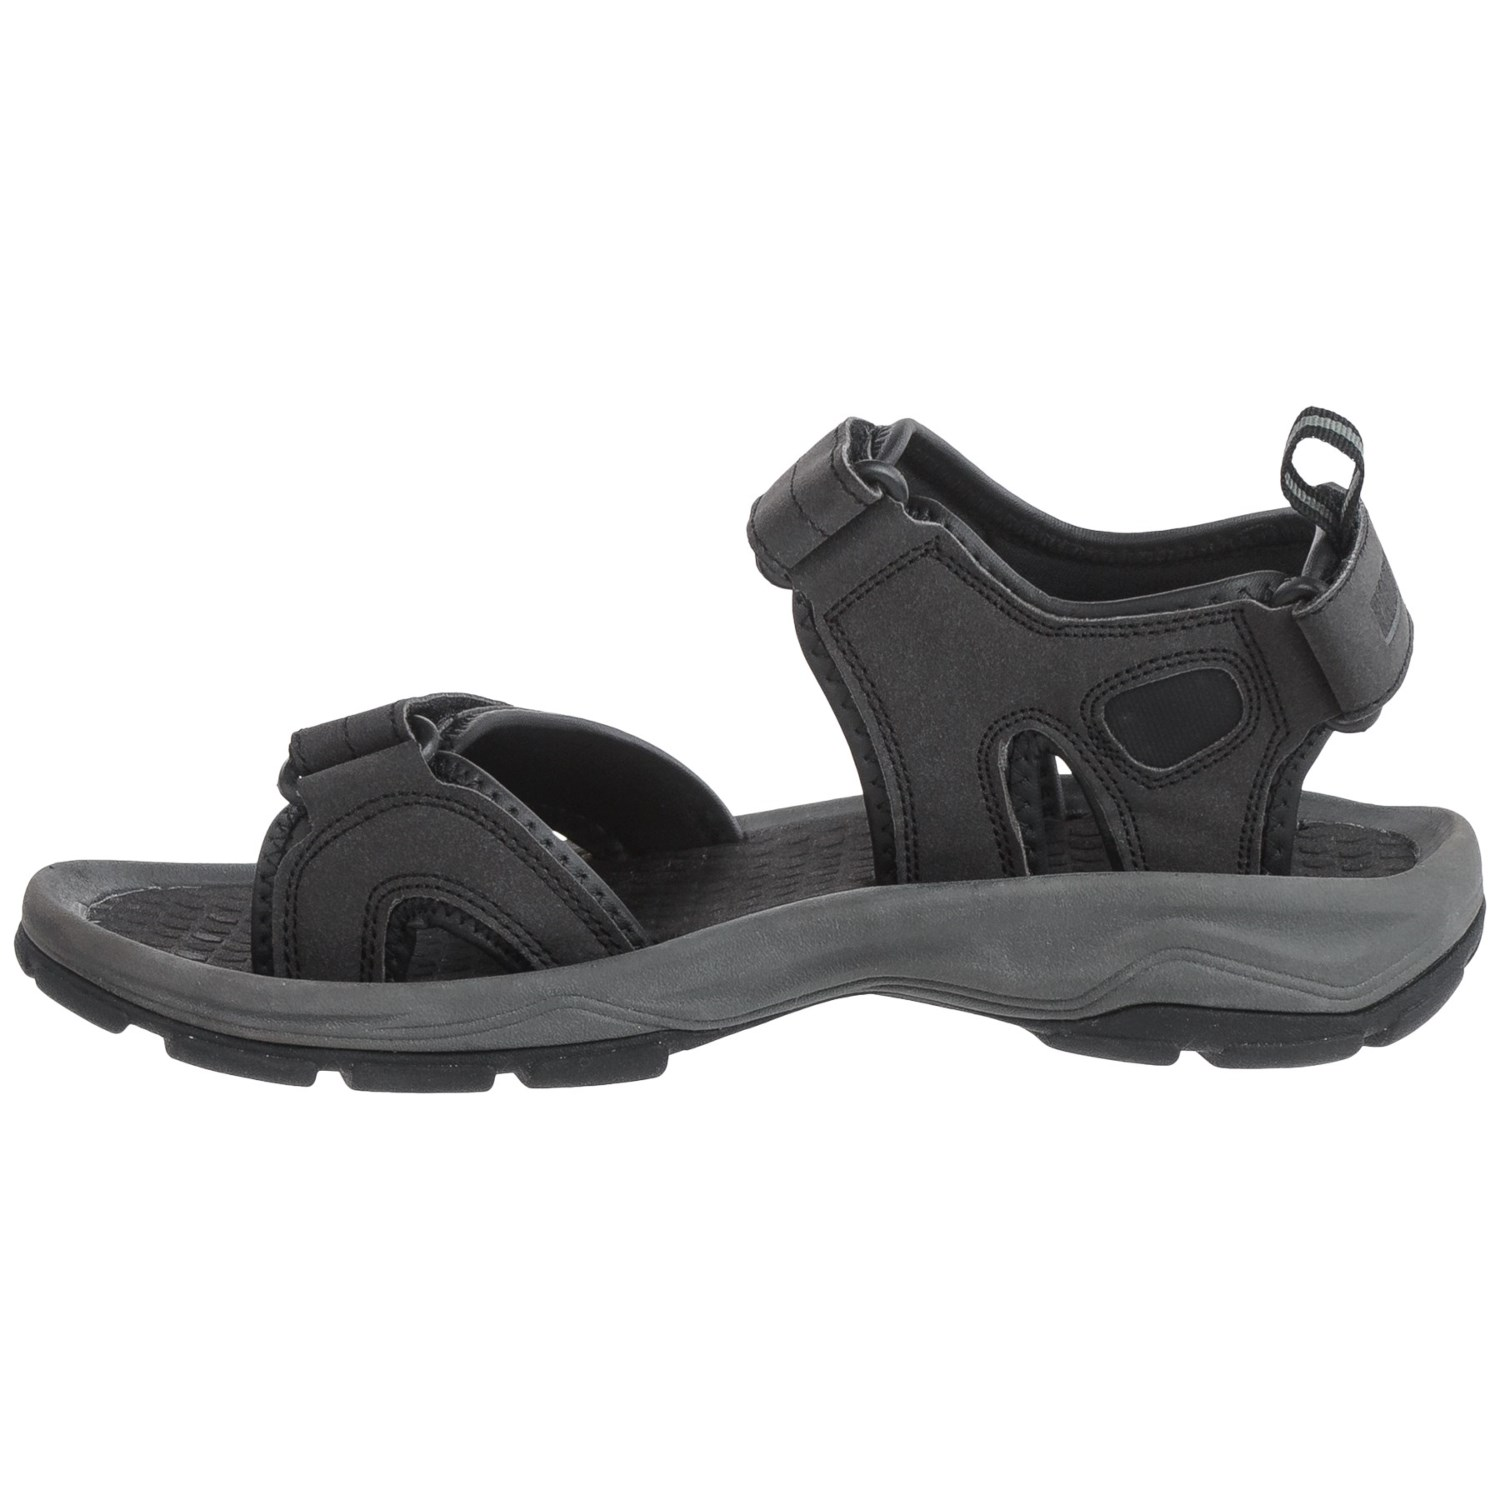 Paige Sport Sandals - Number One Shoes